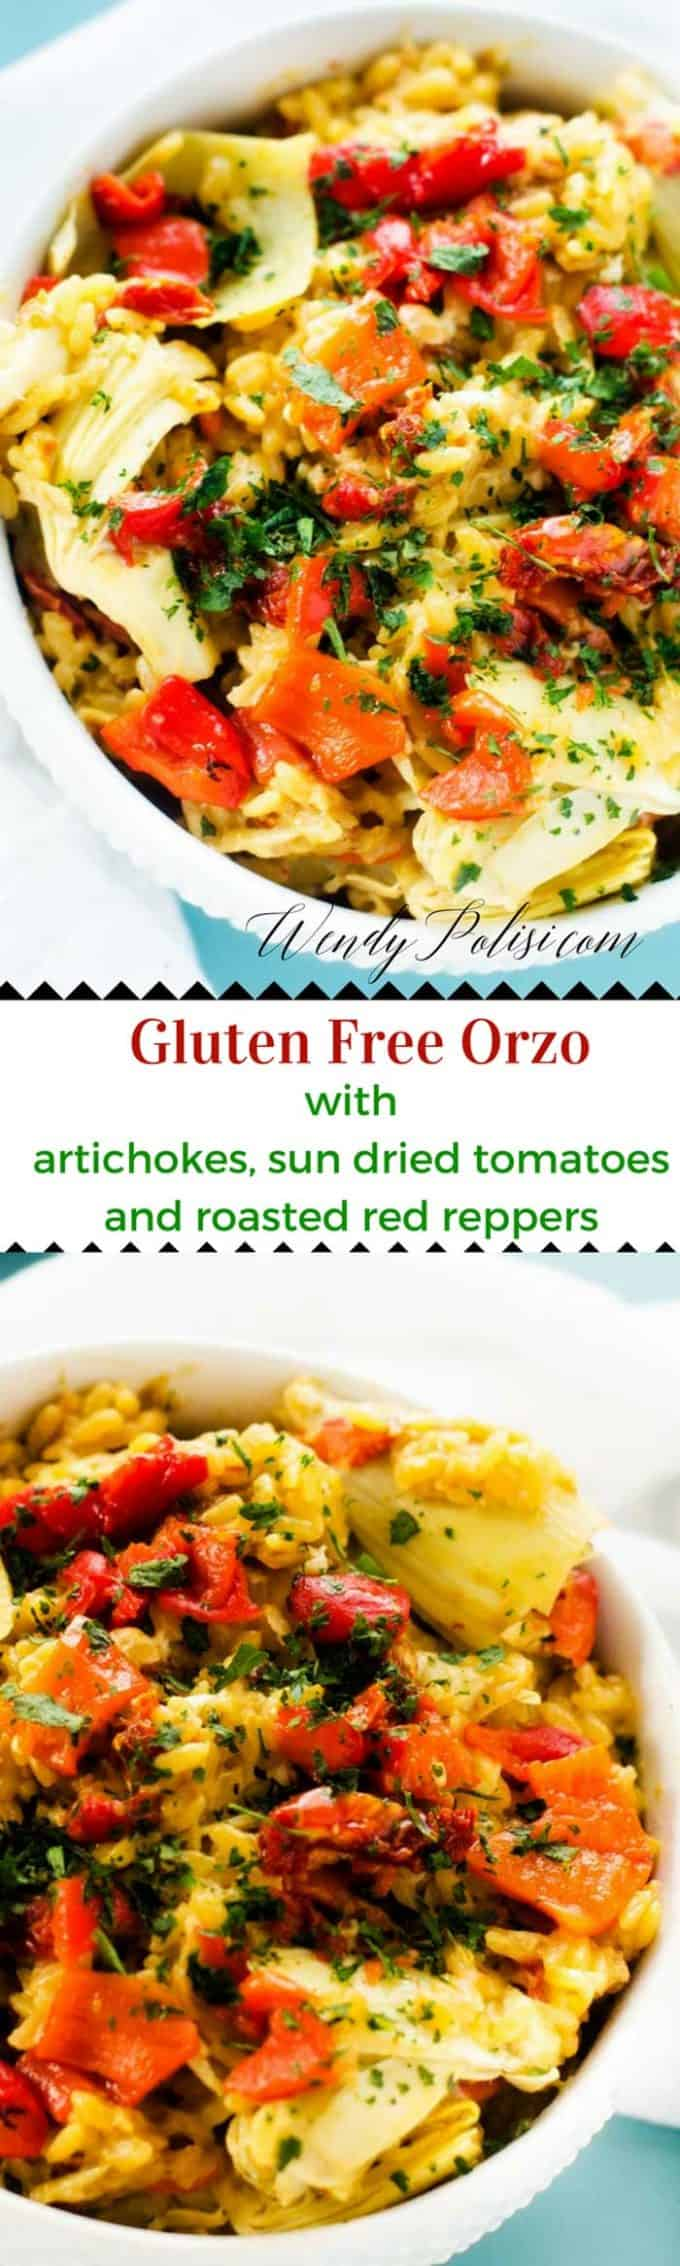 Gluten Free Orzo with Artichokes, Sun Dried Tomatoes & Roasted Red Peppers - This Gluten Free Orzo with Artichokes, Sun Dried Tomatoes & Roasted Red Peppers is an easy to make side dish or vegetarian meal.